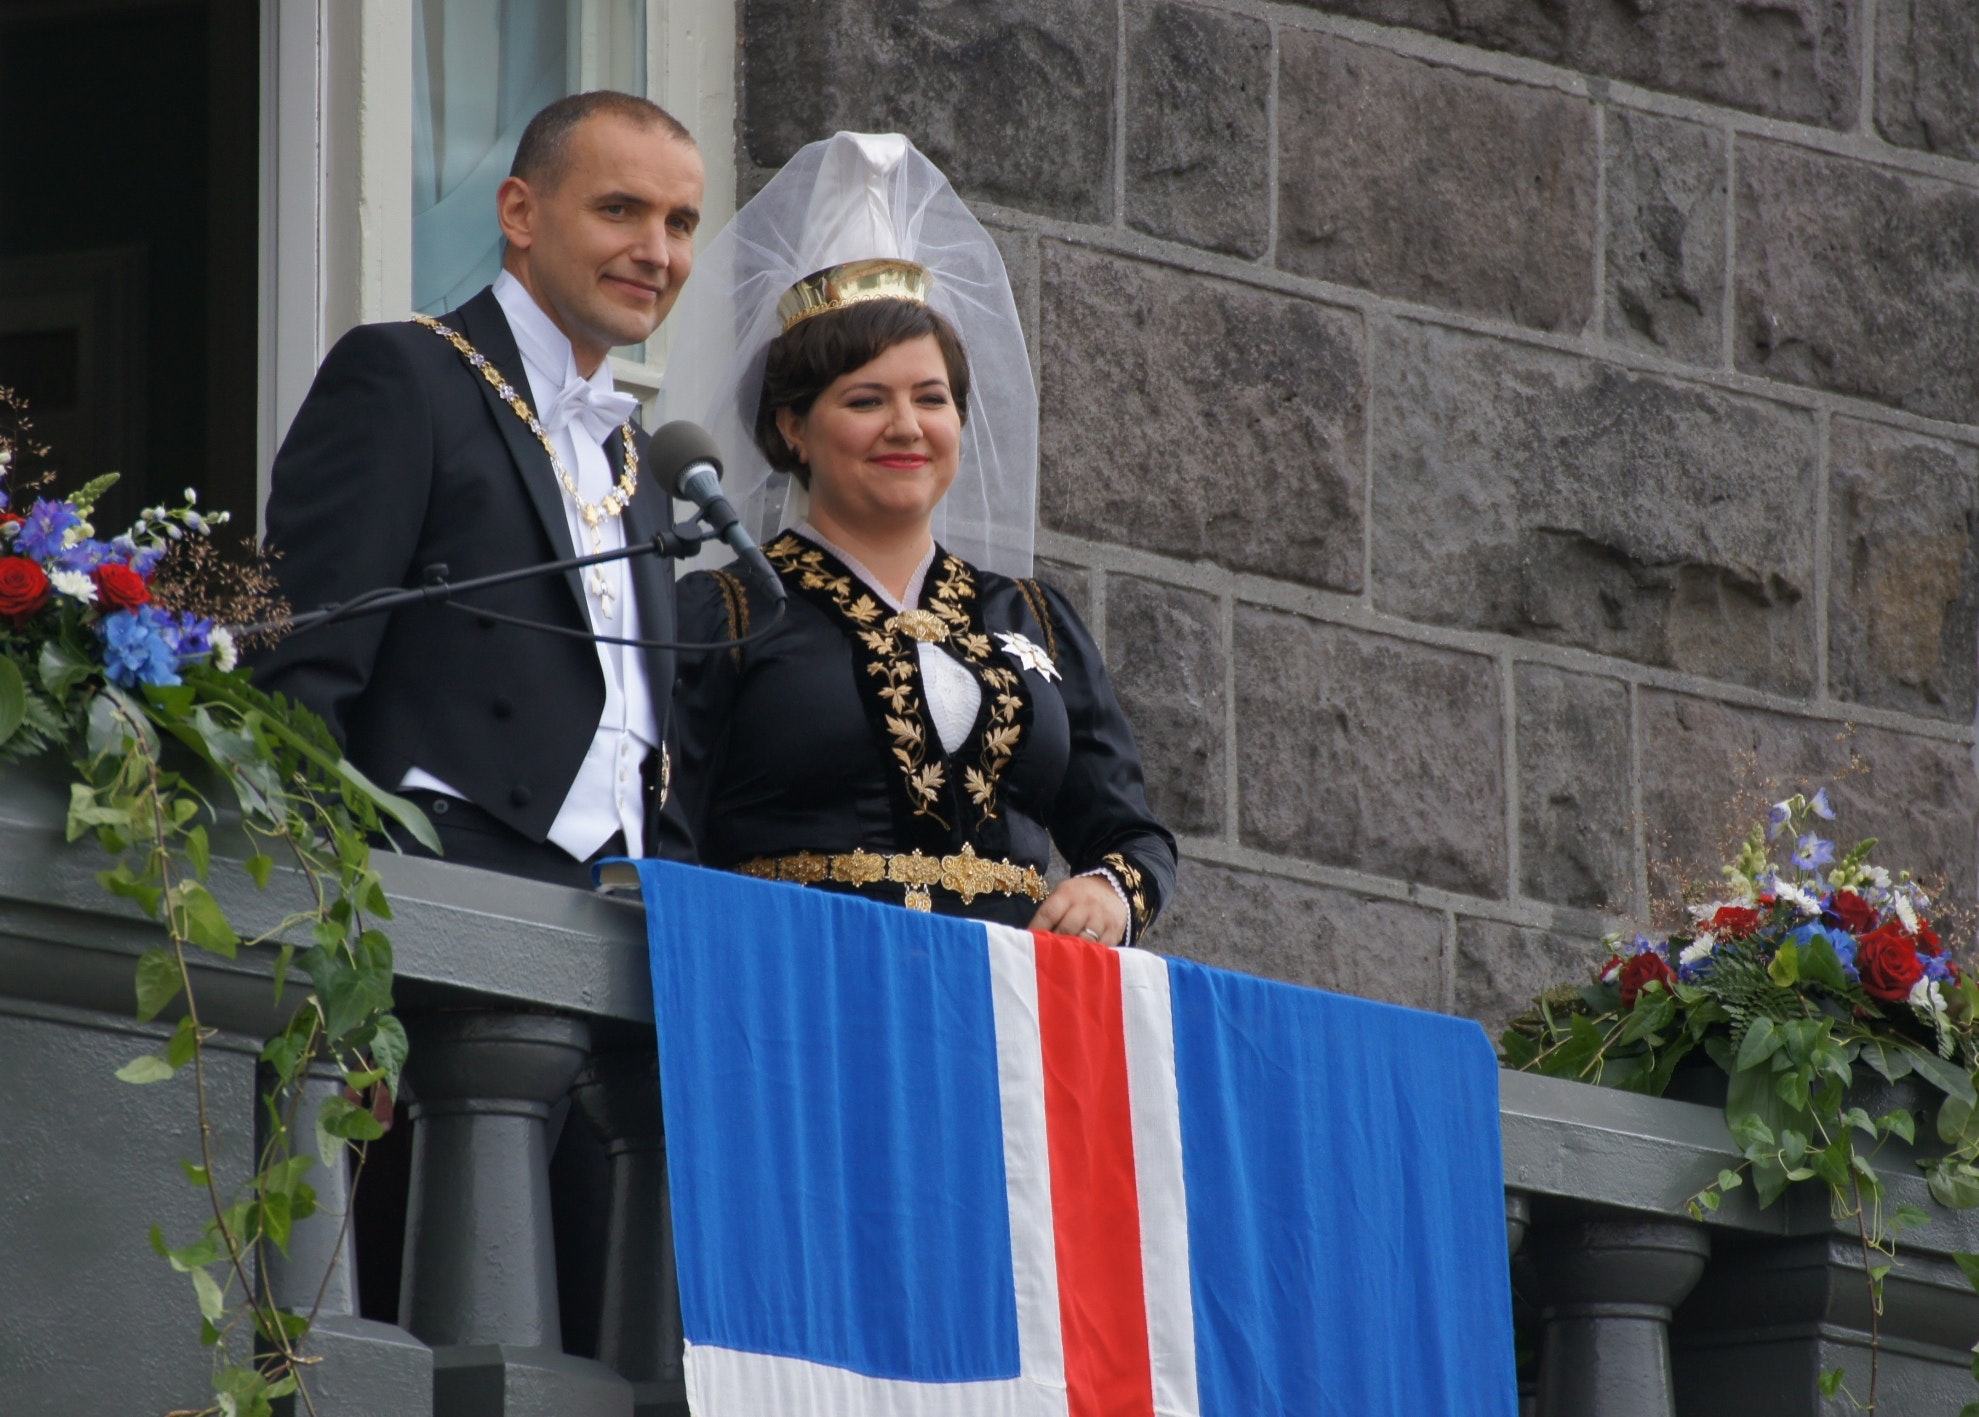 Eliza Reid, Iceland's first lady, and the president Guðni Th